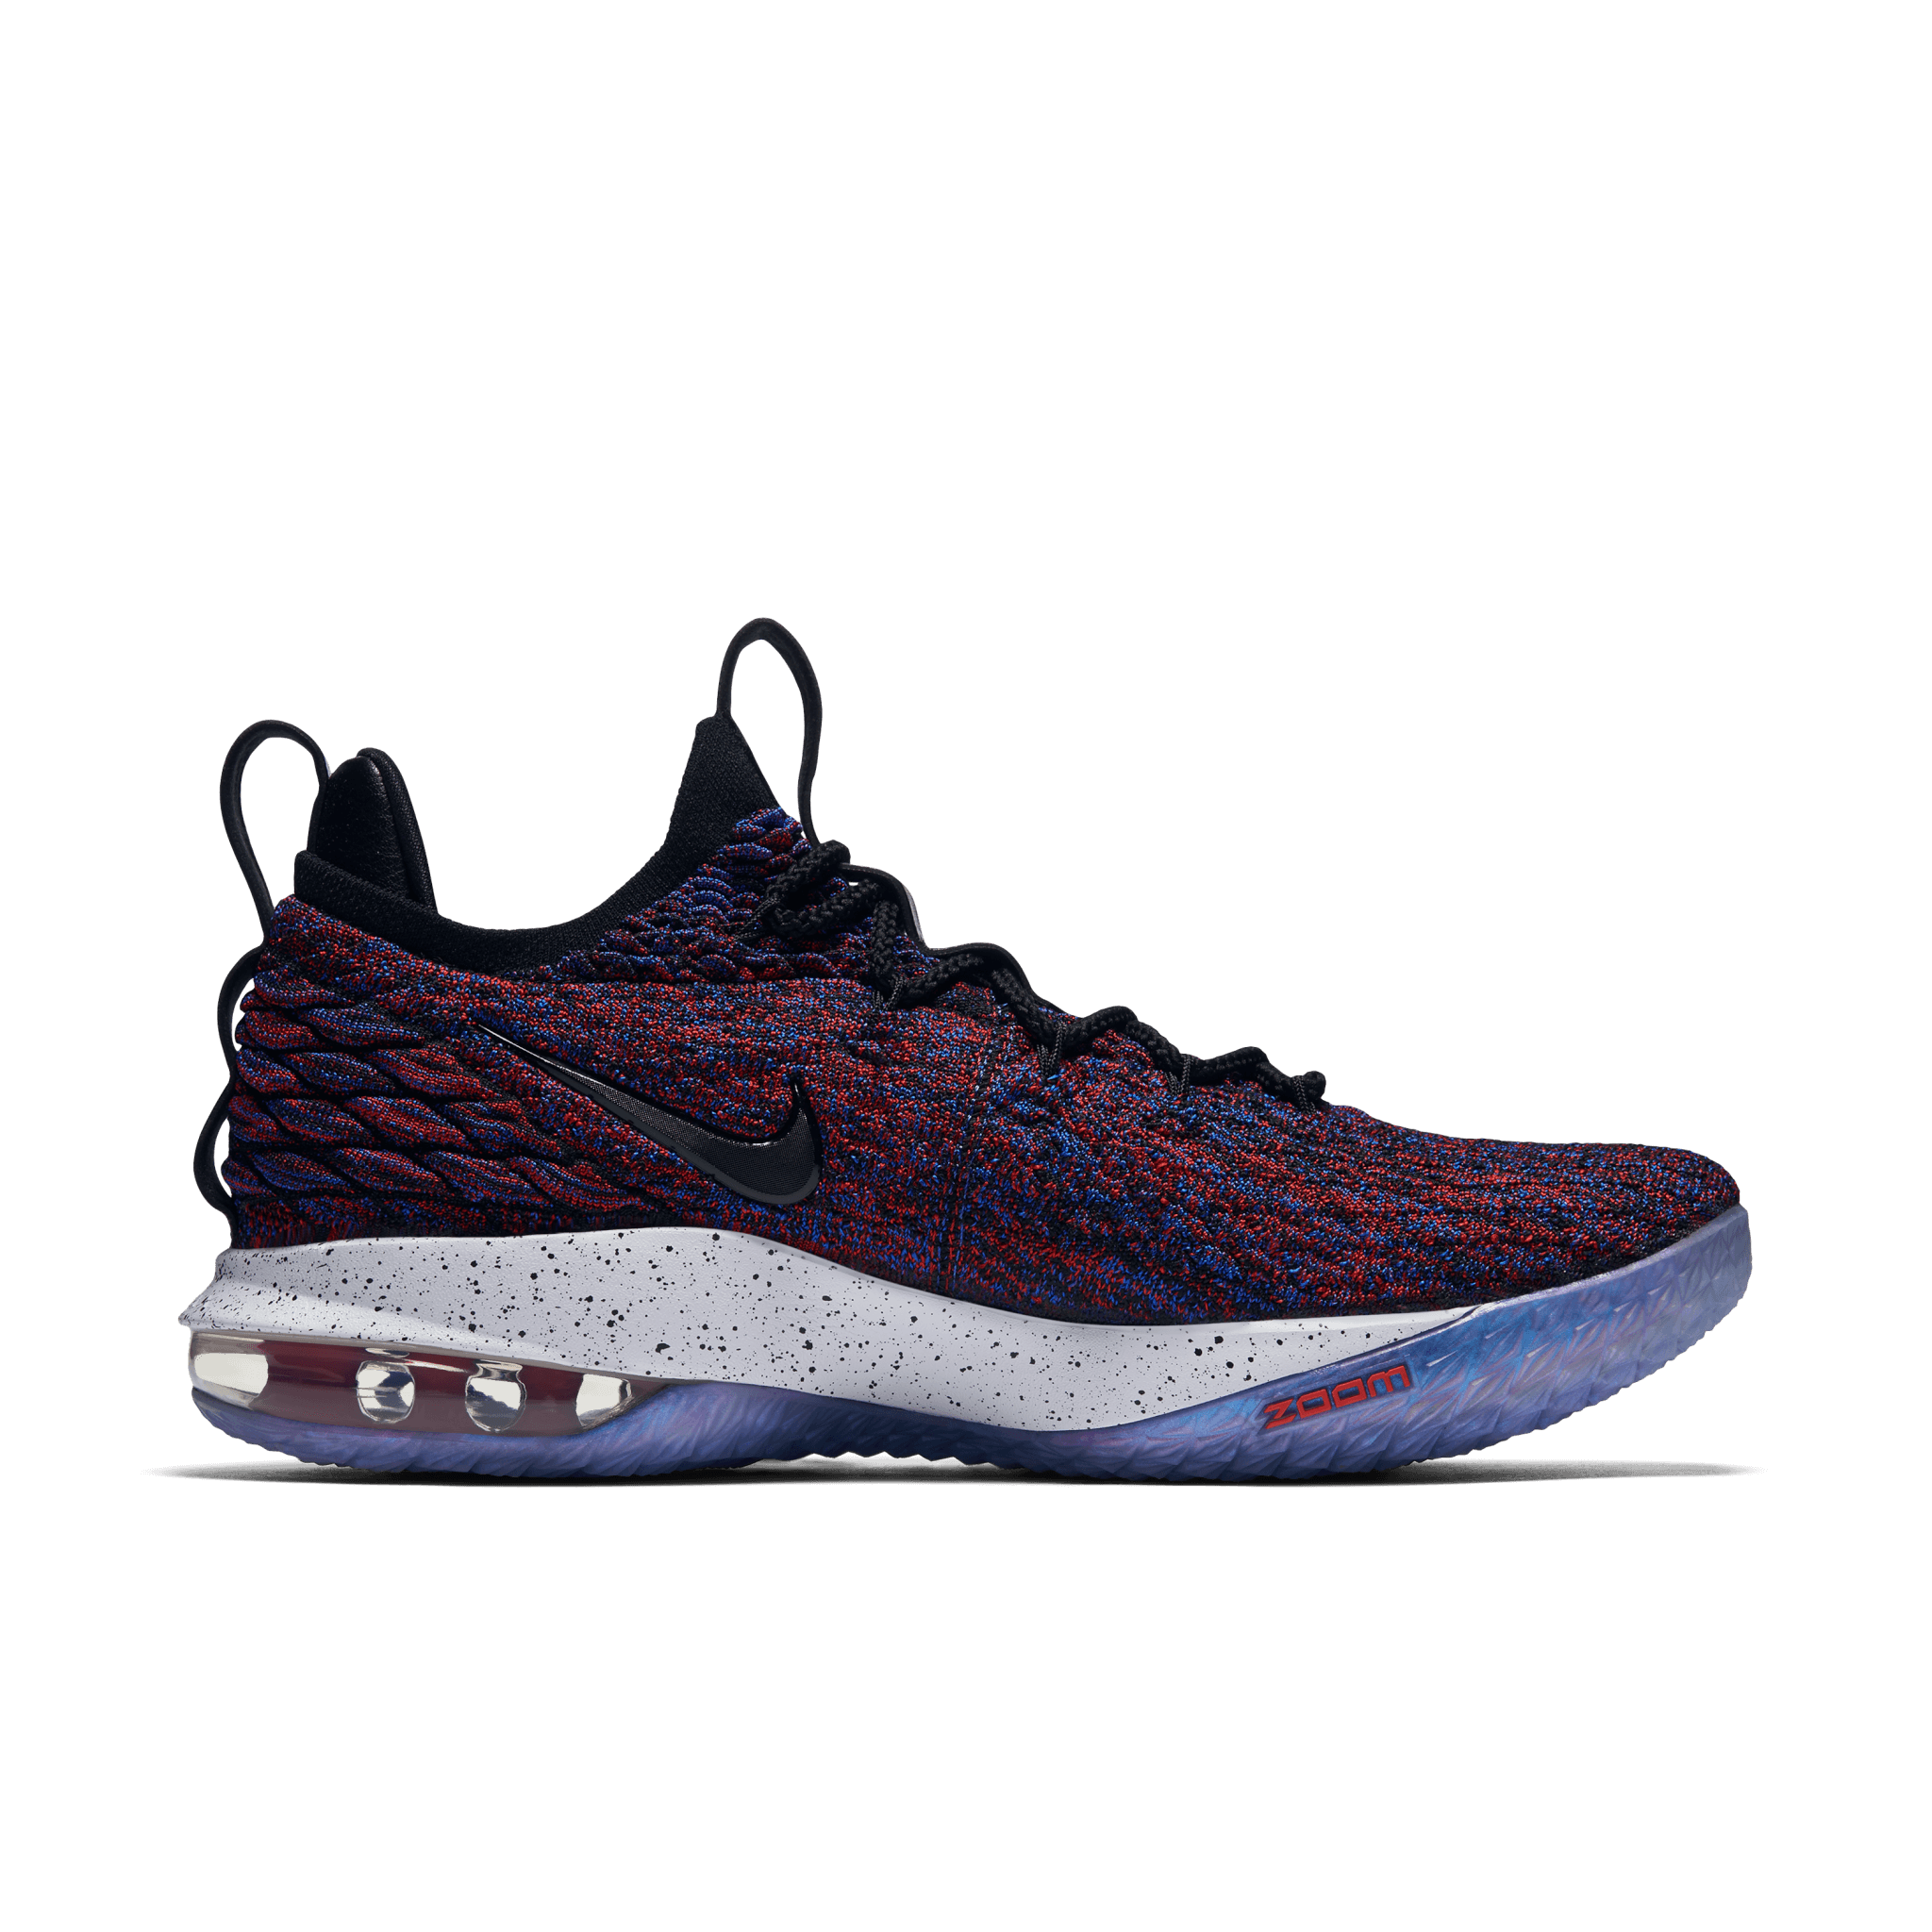 e78e27628e5 Nike Lebron 15 Low Performance Review